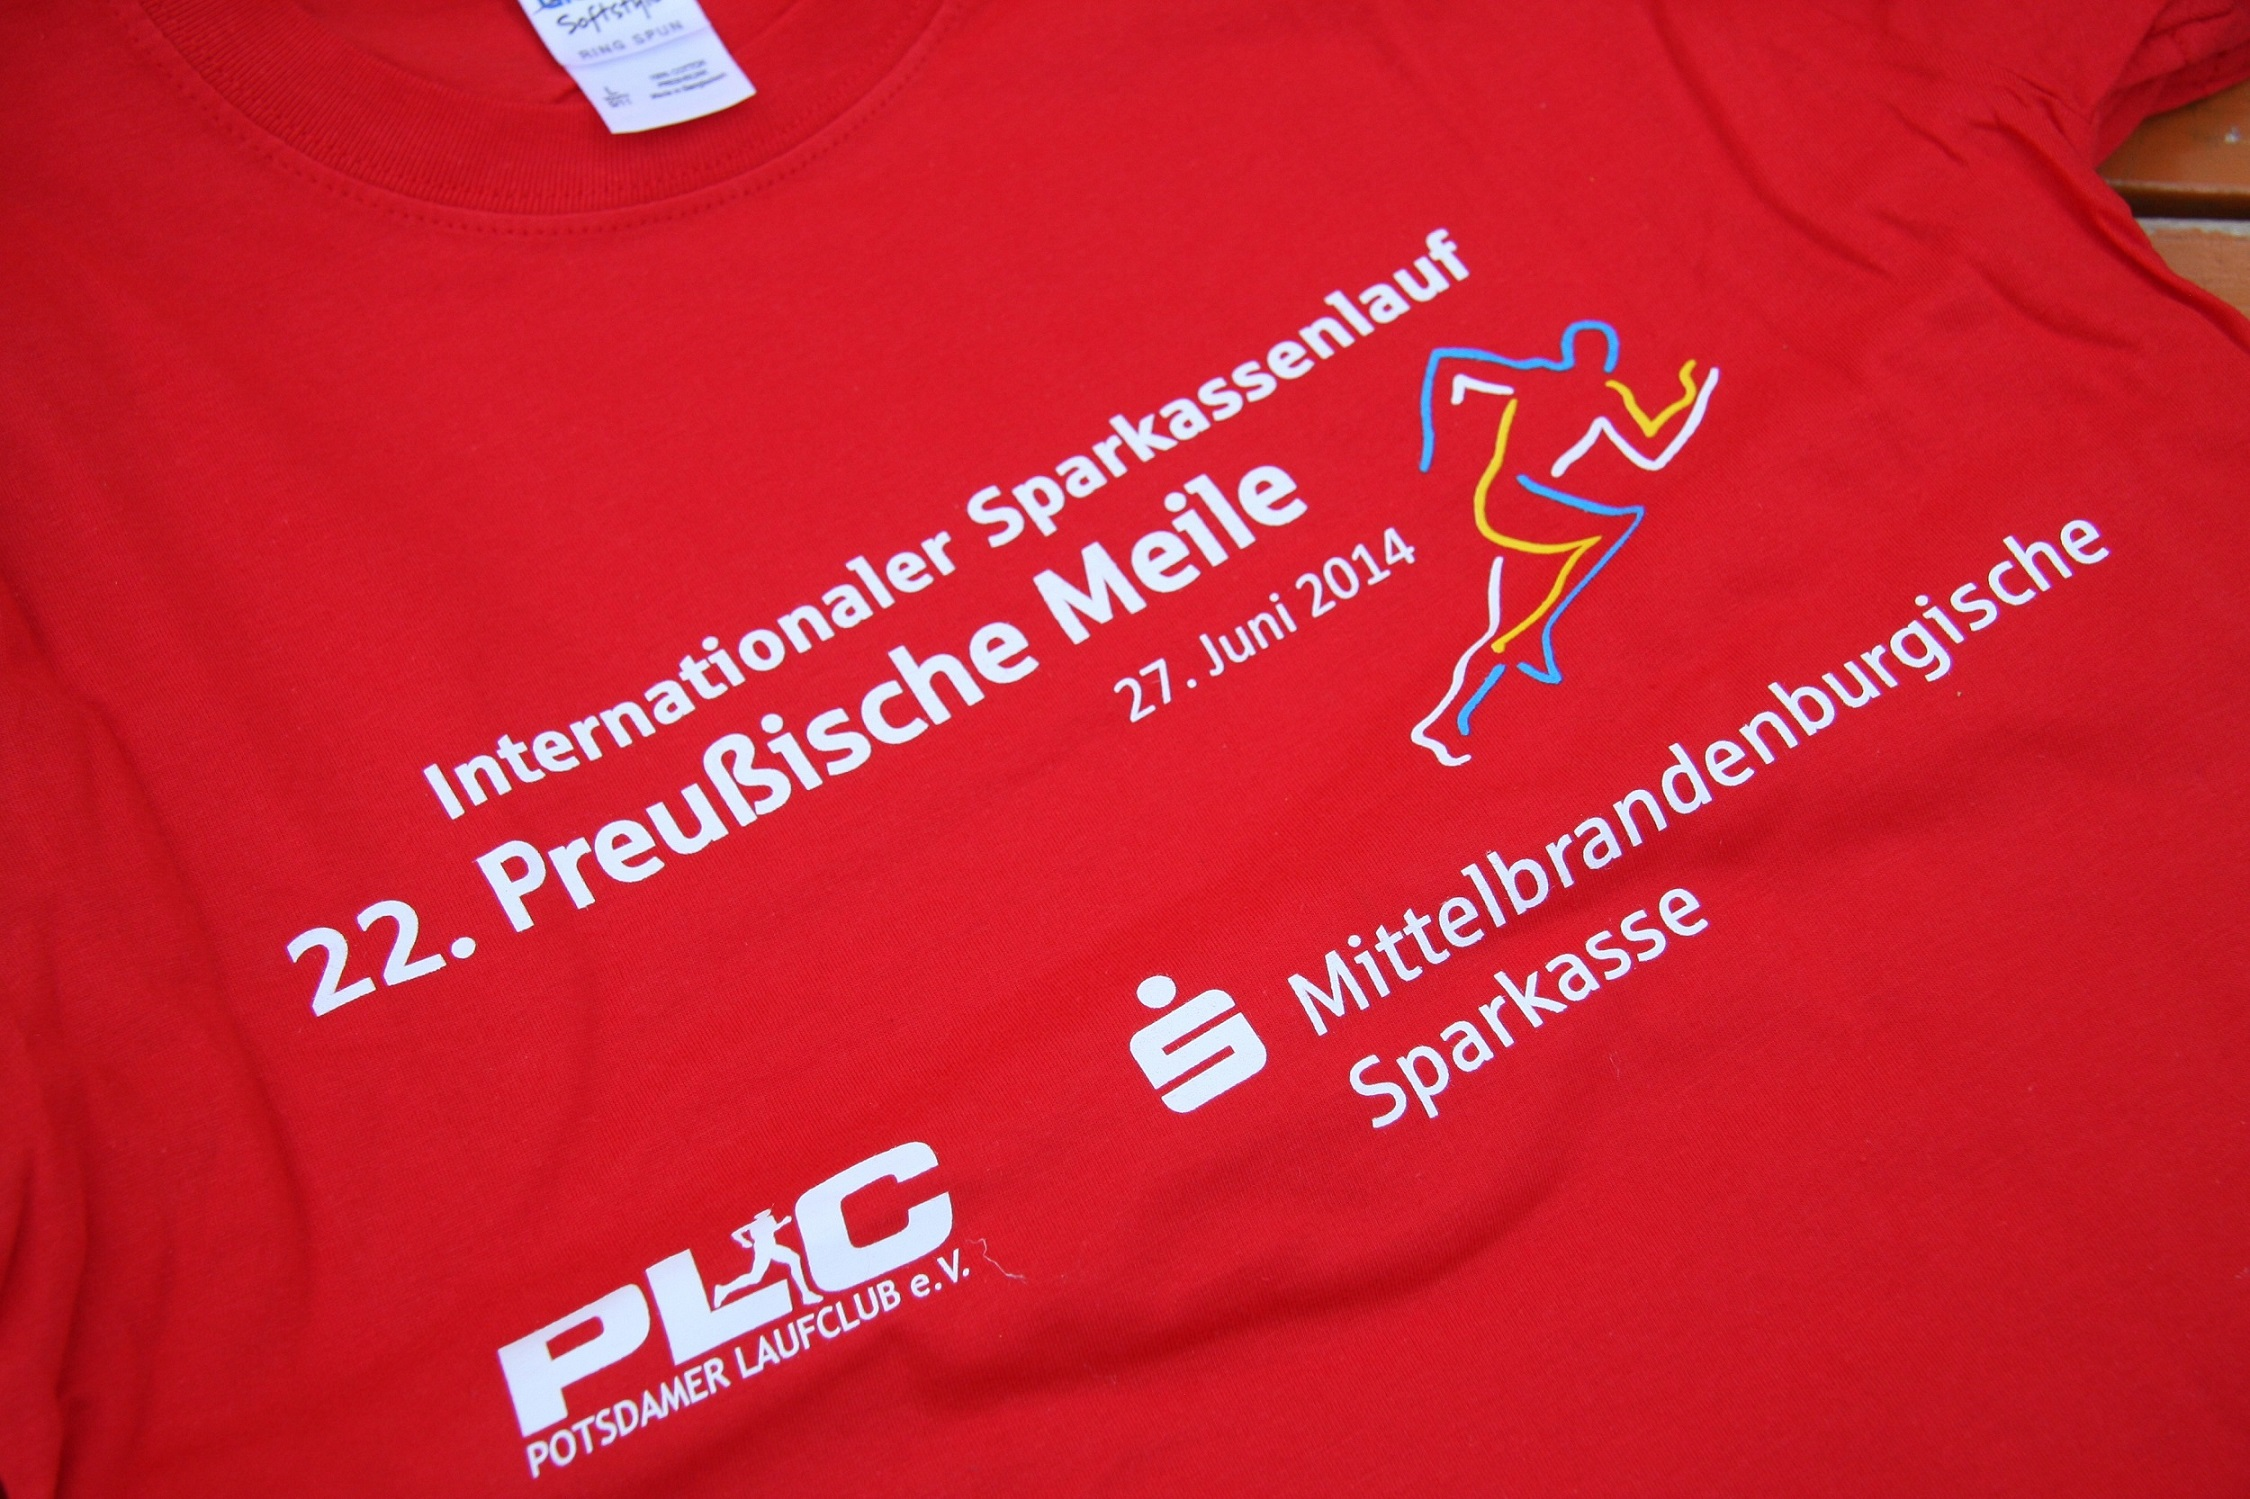 PM Meile 2014 1